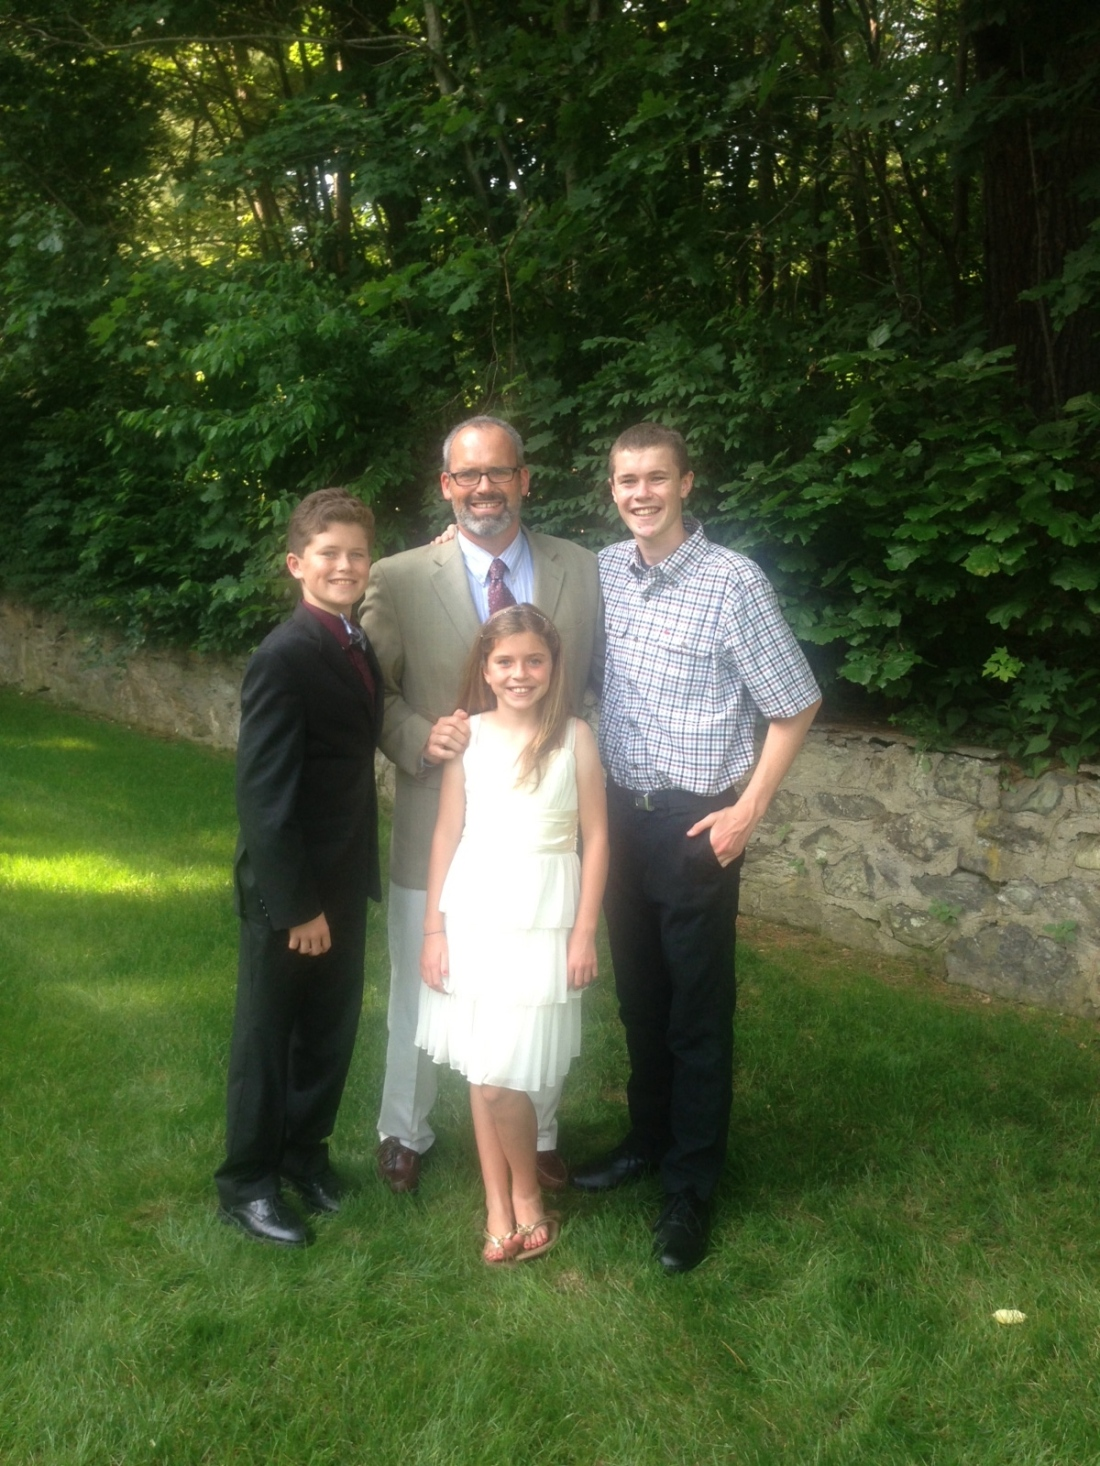 Rolf and the big sibs in Boston all cleaned up and ready to go to a wedding!